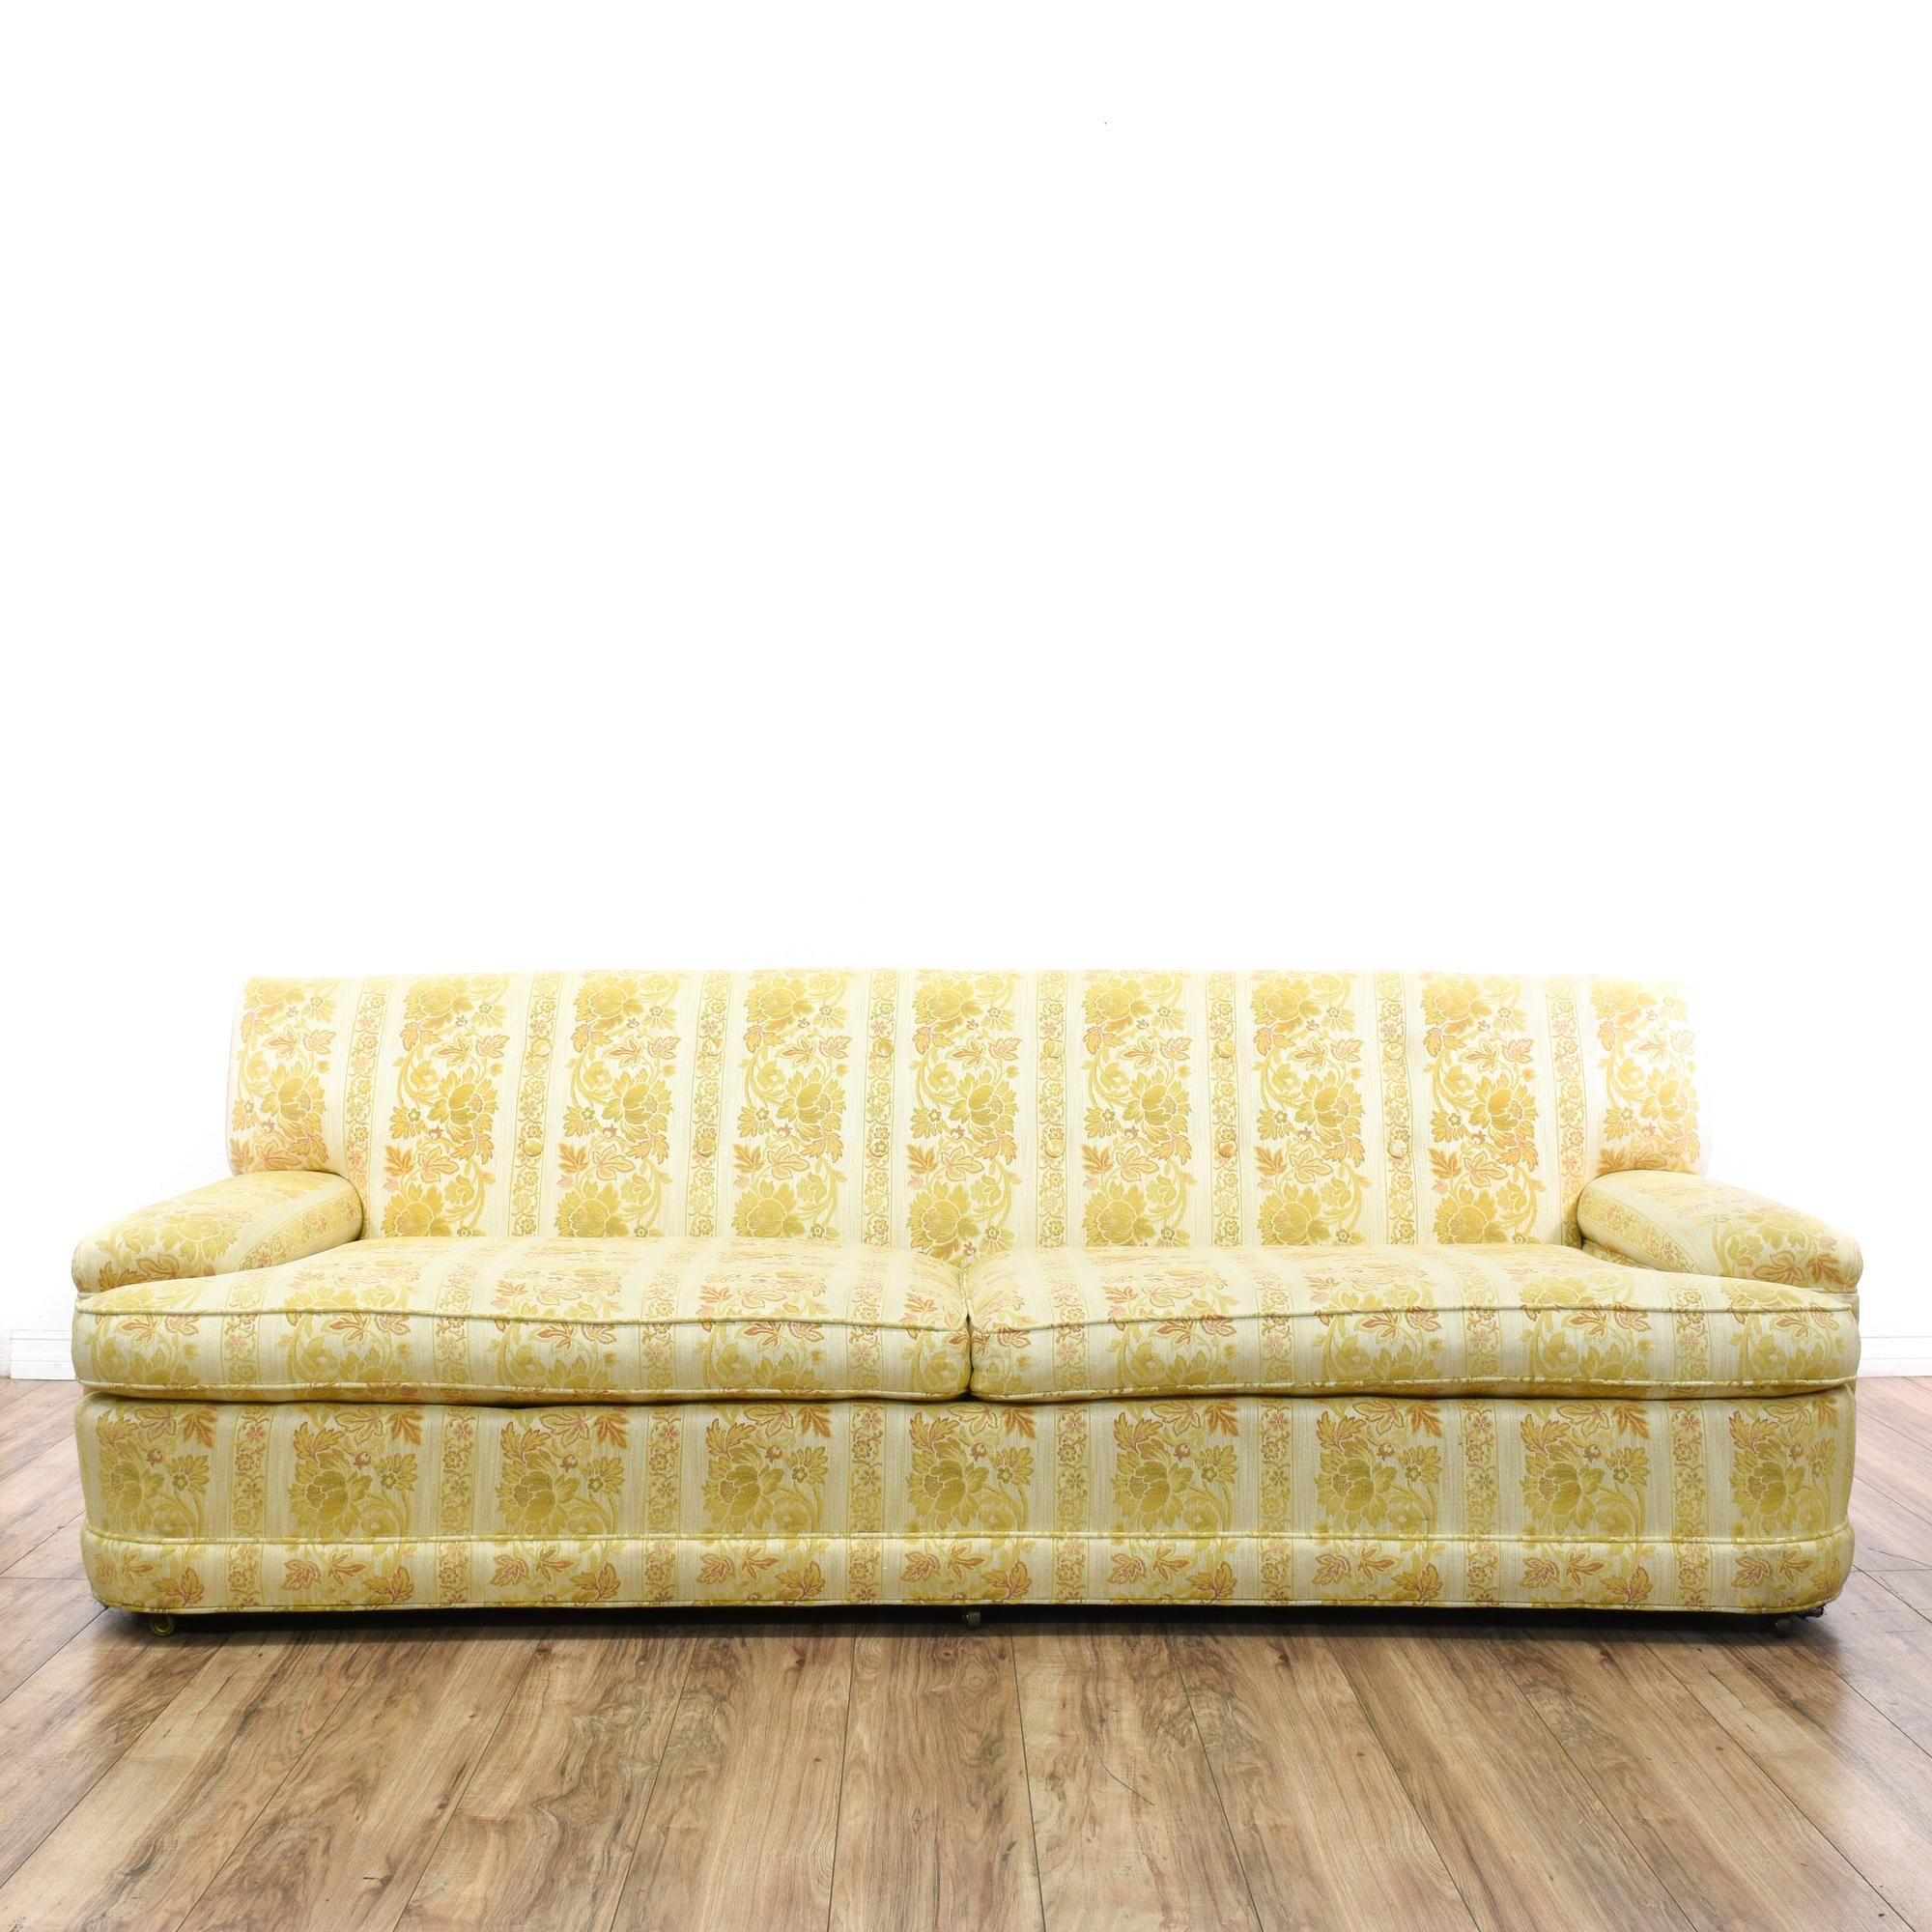 This mid century modern sofa is upholstered in a durable yellow and white fabric with floral striped print. This long sofa has a low back, cushion arms and a curved in front. Comfortable couch perfect for long cat naps! #midcenturymodern #sofas #sofaorcouch #sandiegovintage #vintagefurniture